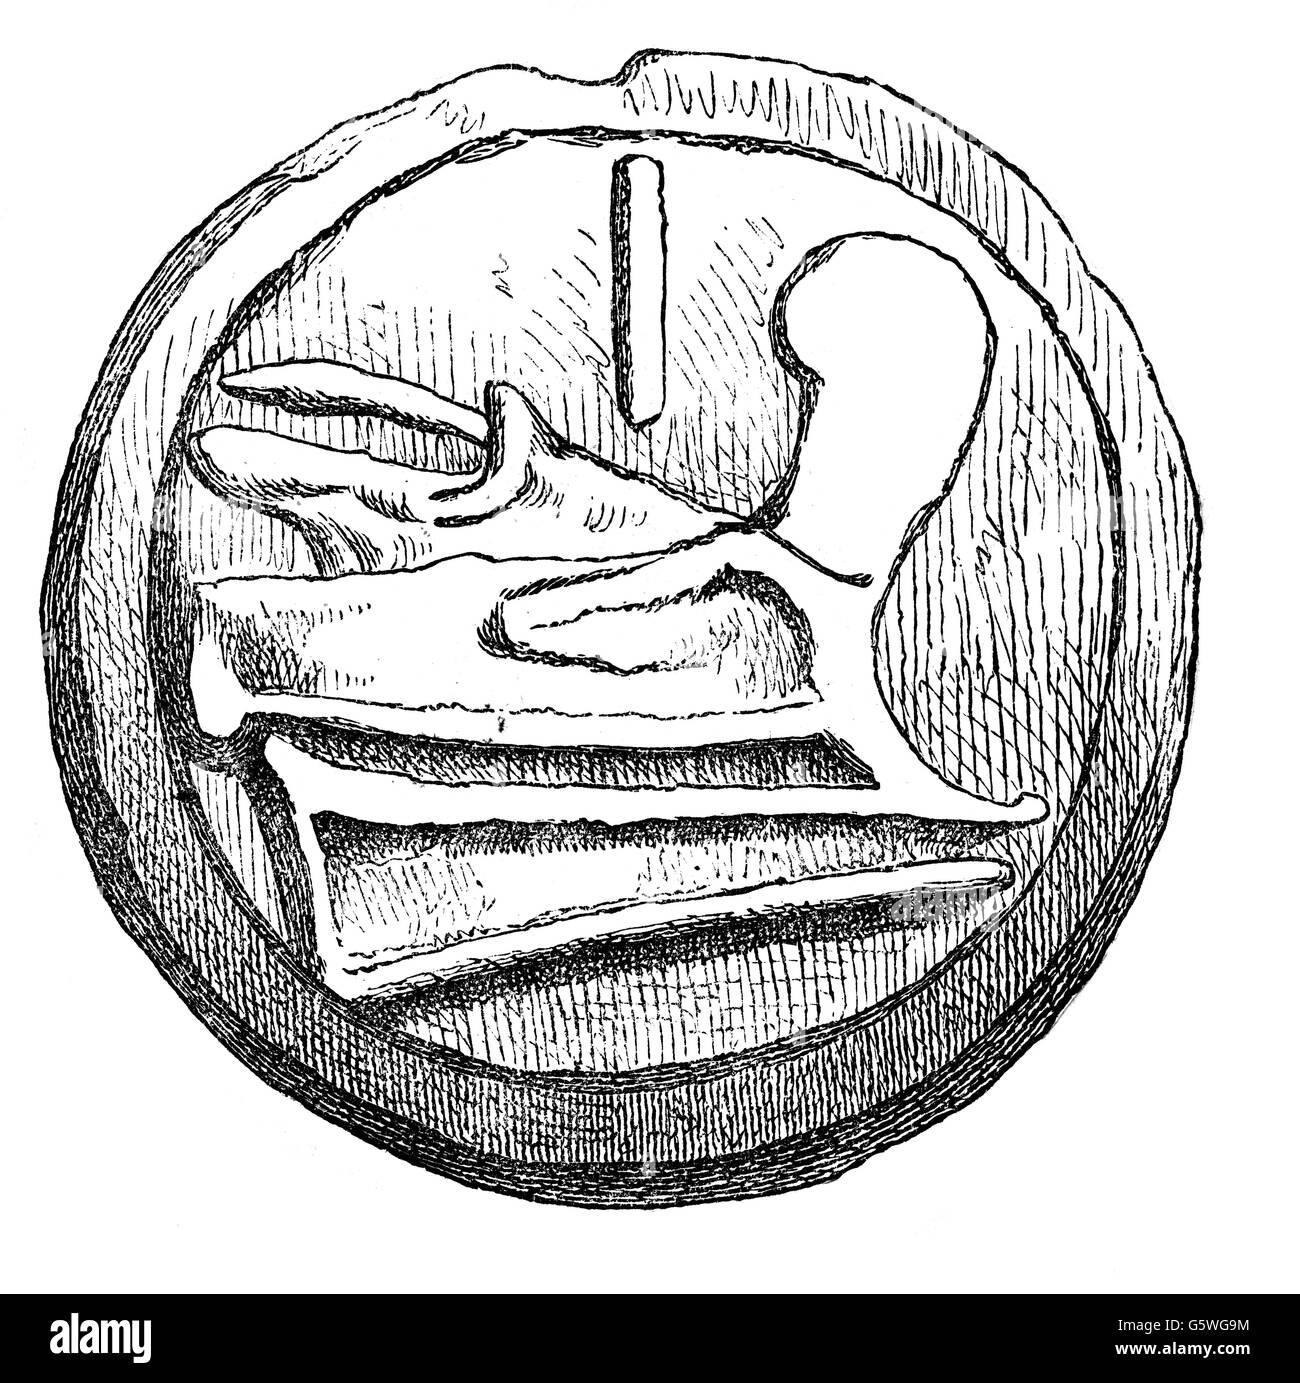 money / finances, coins, ancient world, Roman Empire, ace, reverse, image of a ram bow, wood engraving, 19th century, - Stock Image